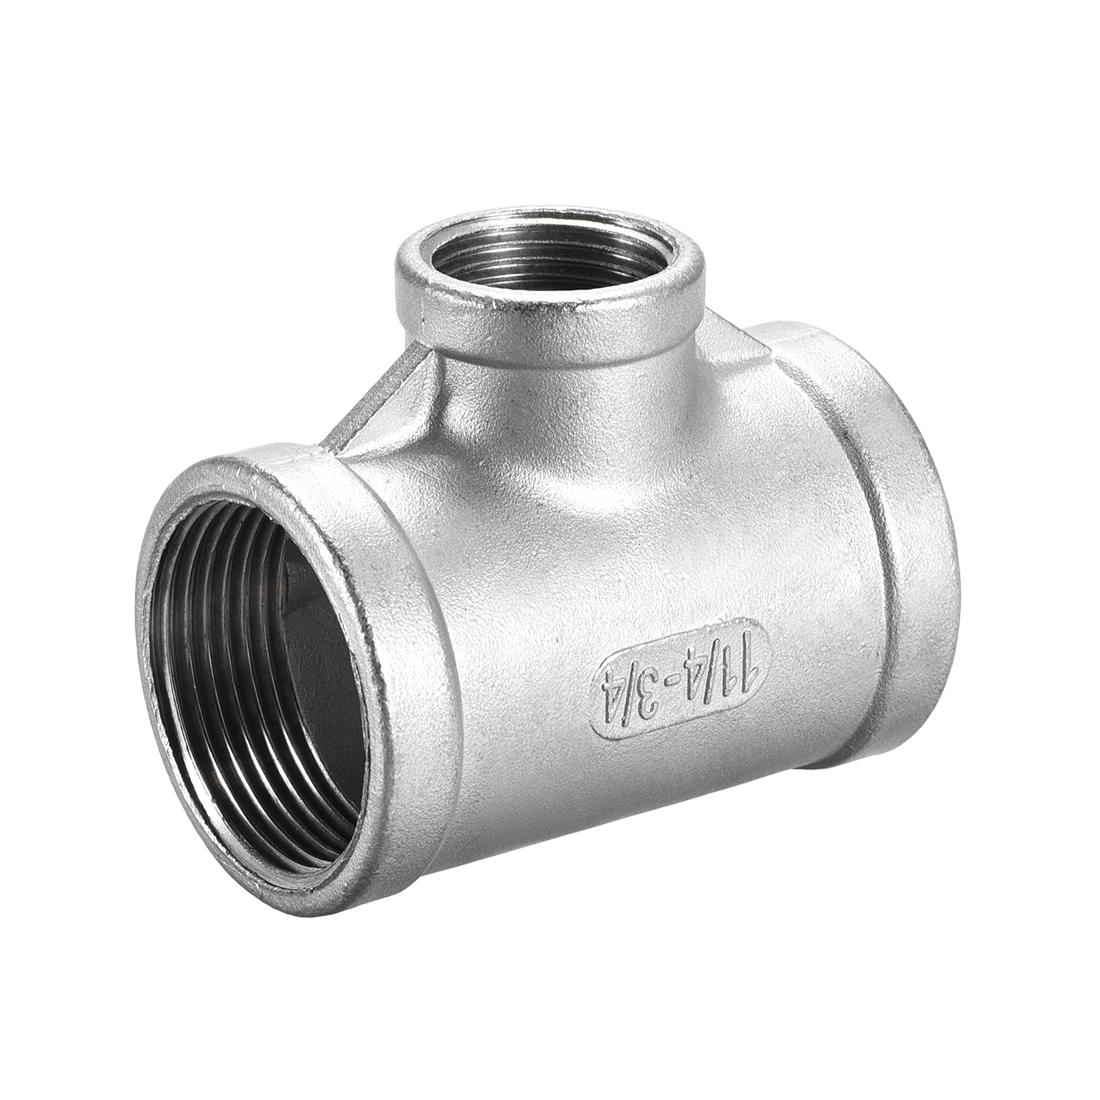 Stainless Steel 304 Pipe Fitting 1-1/4 BSPT x 3/4 BSPT Tee Shaped Connector